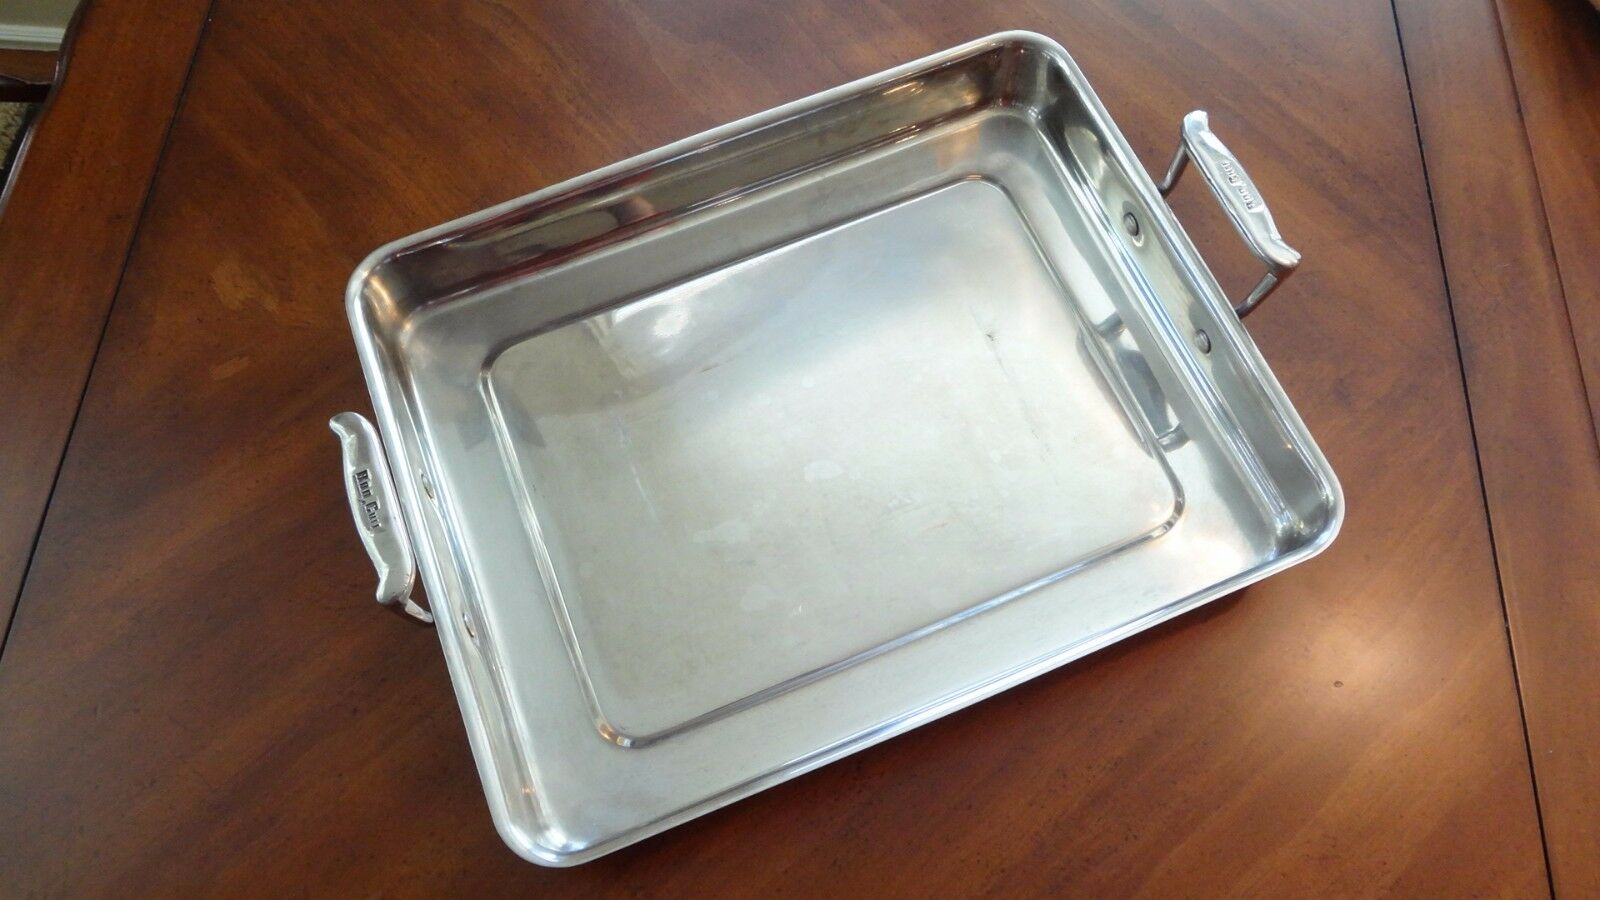 Bon Chef 60012 Stainless Steel Cucina Large Food Pan with Handles,5 qt Capacity